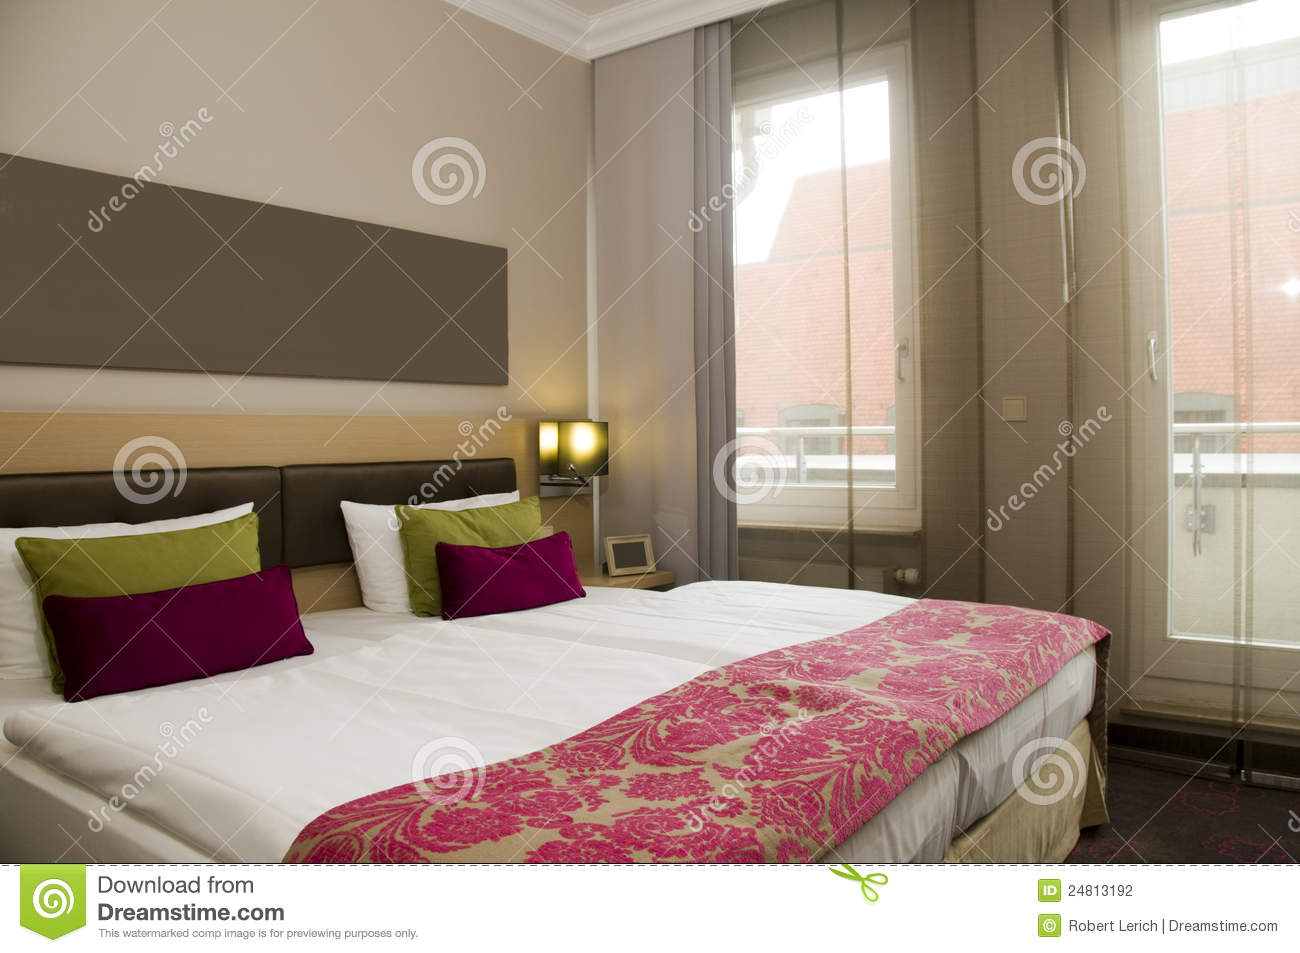 boutique hotel room berlin germany stock photography image 24813192. Black Bedroom Furniture Sets. Home Design Ideas